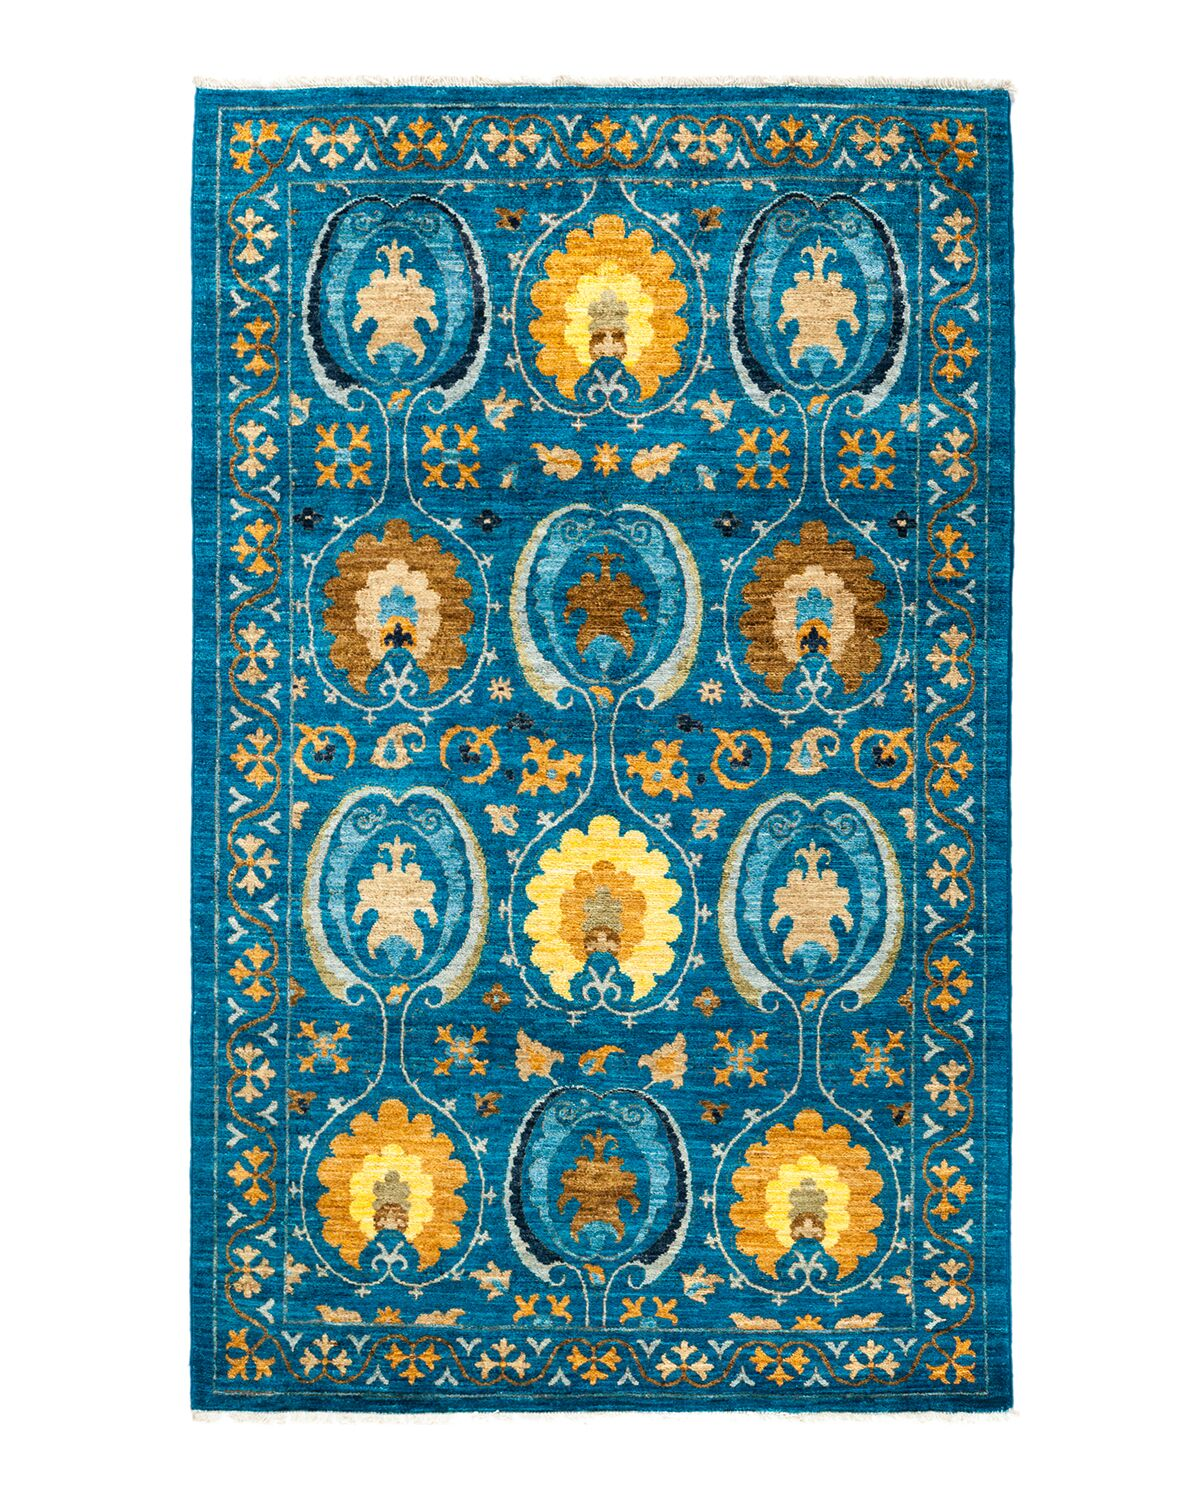 One-of-a-Kind Suzani Hand-Knotted Blue Area Rug Rug Size: Rectangle 4'1